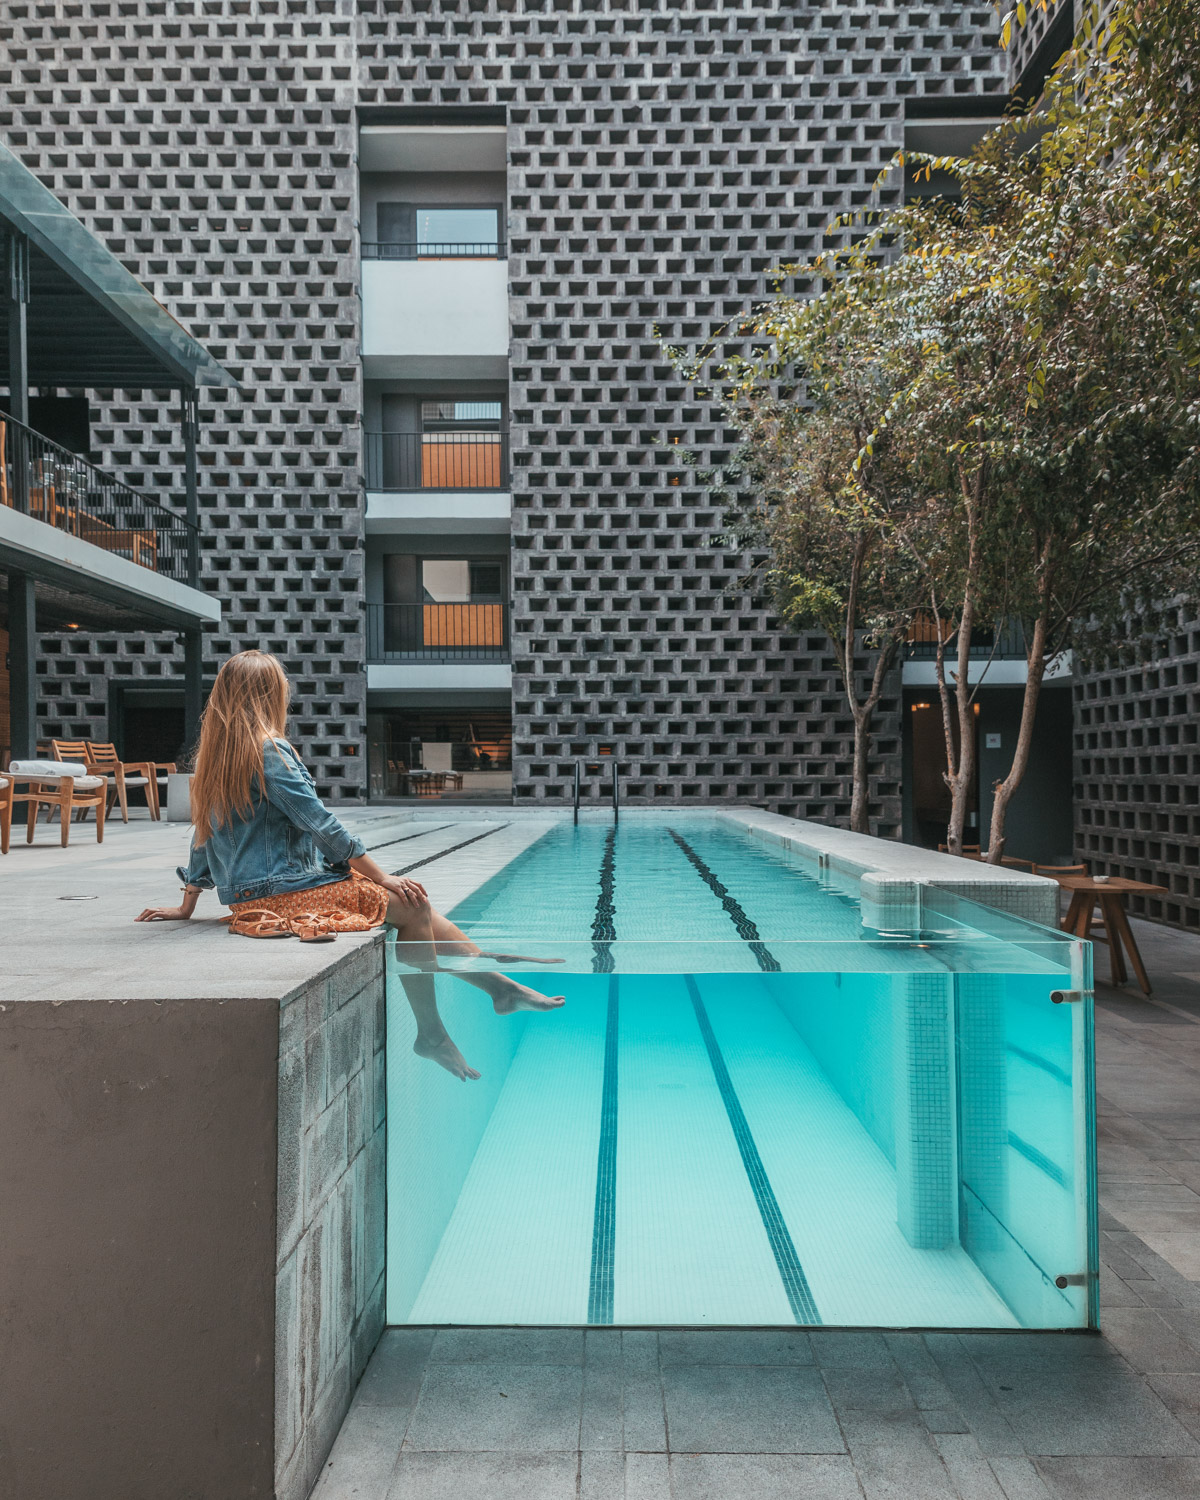 Hotel Carlota // The Most Instagrammable Spots in Mexico City #readysetjetset